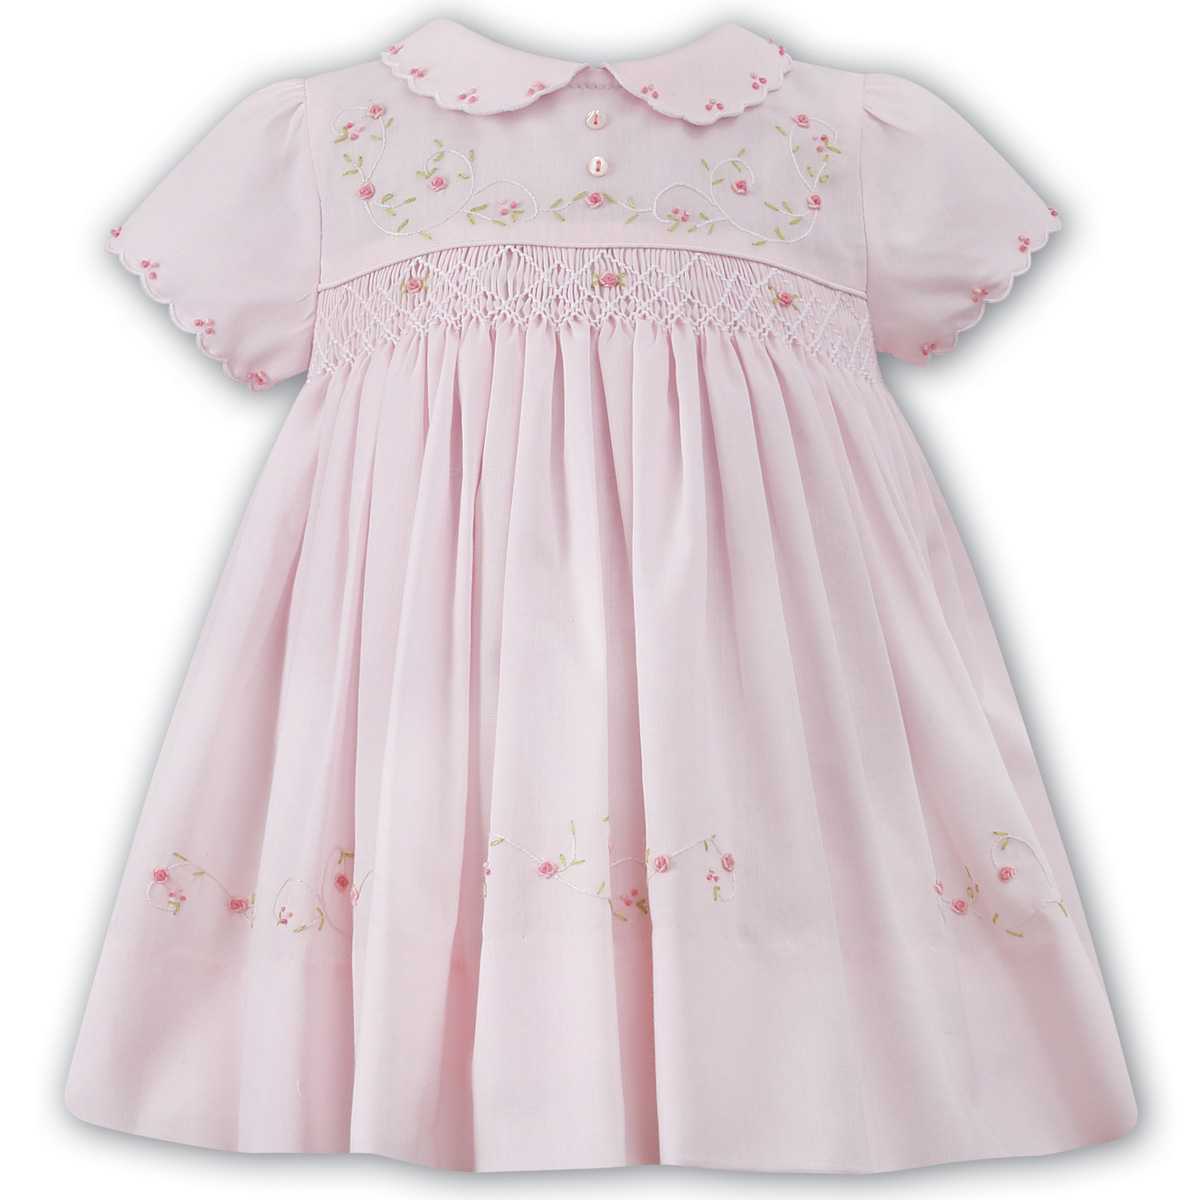 Classic smocked dress is a great baby gift. Hiccups Childrens Boutique Girls Pink Smocked Take Home Dress Bonnet Layette. by Hiccups Childrens Boutique. $ $ 36 FREE Shipping on eligible orders. Product Features Classic smocked dress is a great baby gift.